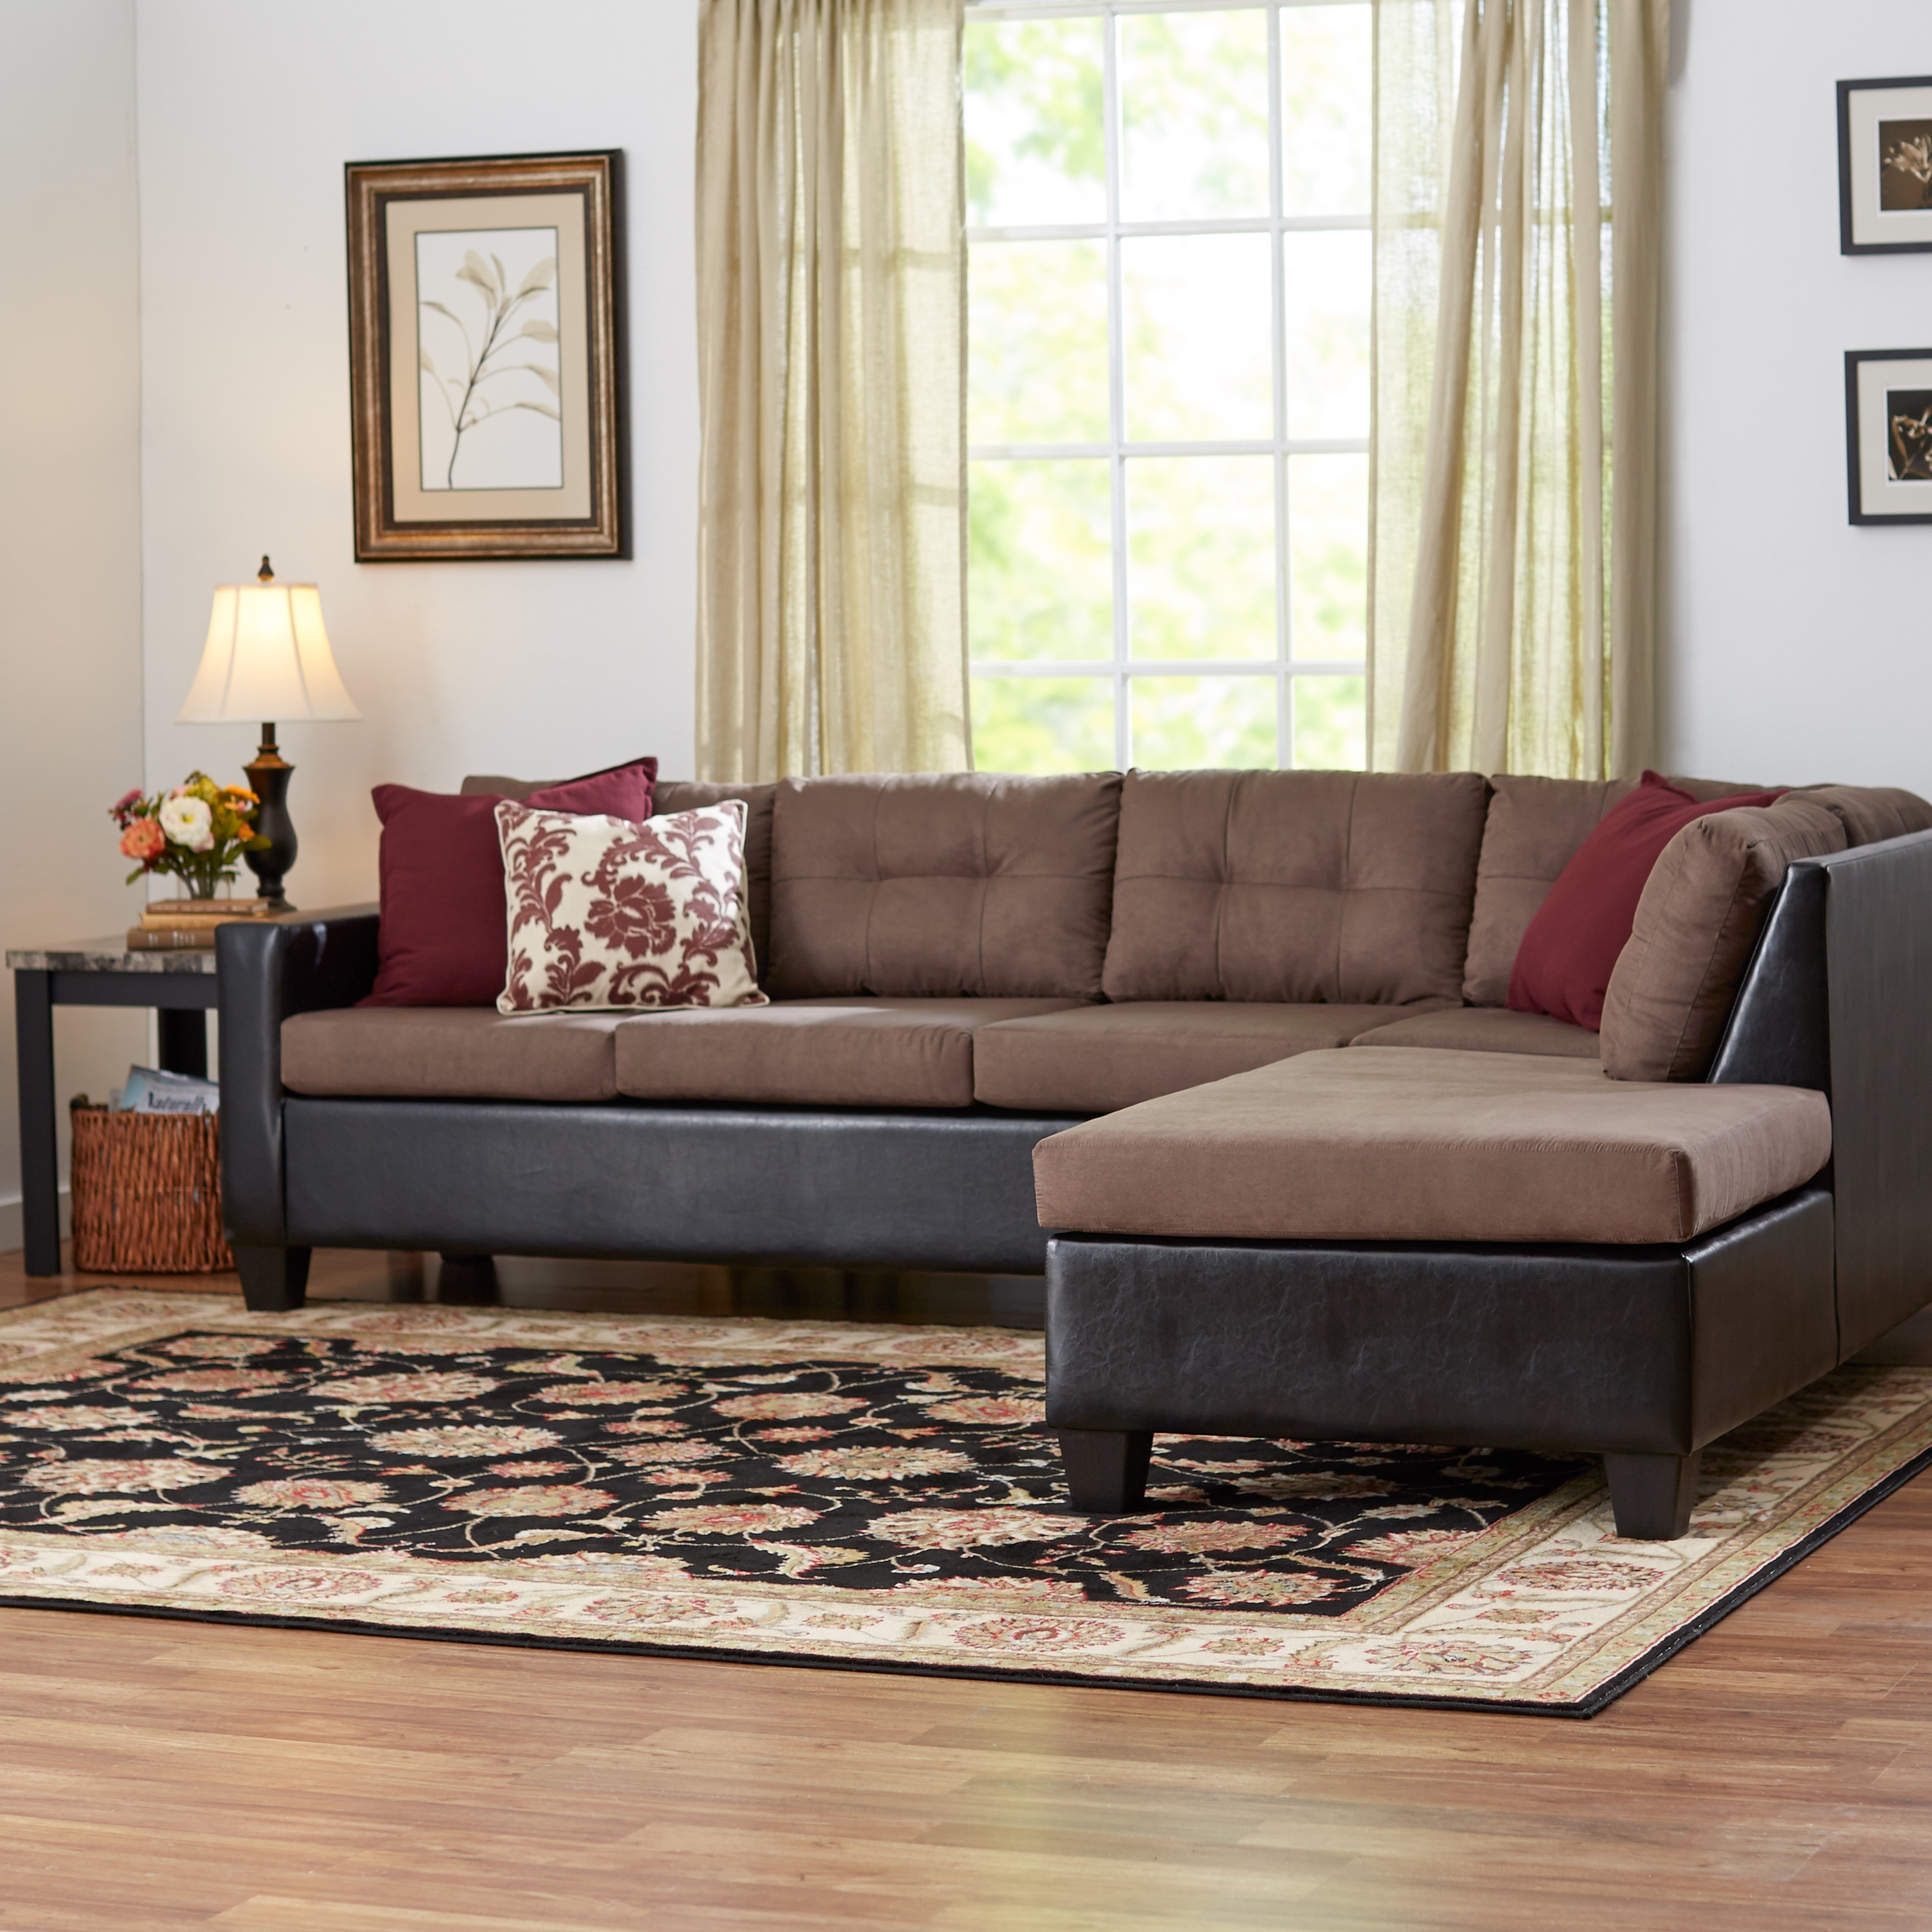 Furniture : Magnificent Couch Under 200 Best Of Sofa Elegant inside Clearance Sectional Sofas (Image 9 of 15)